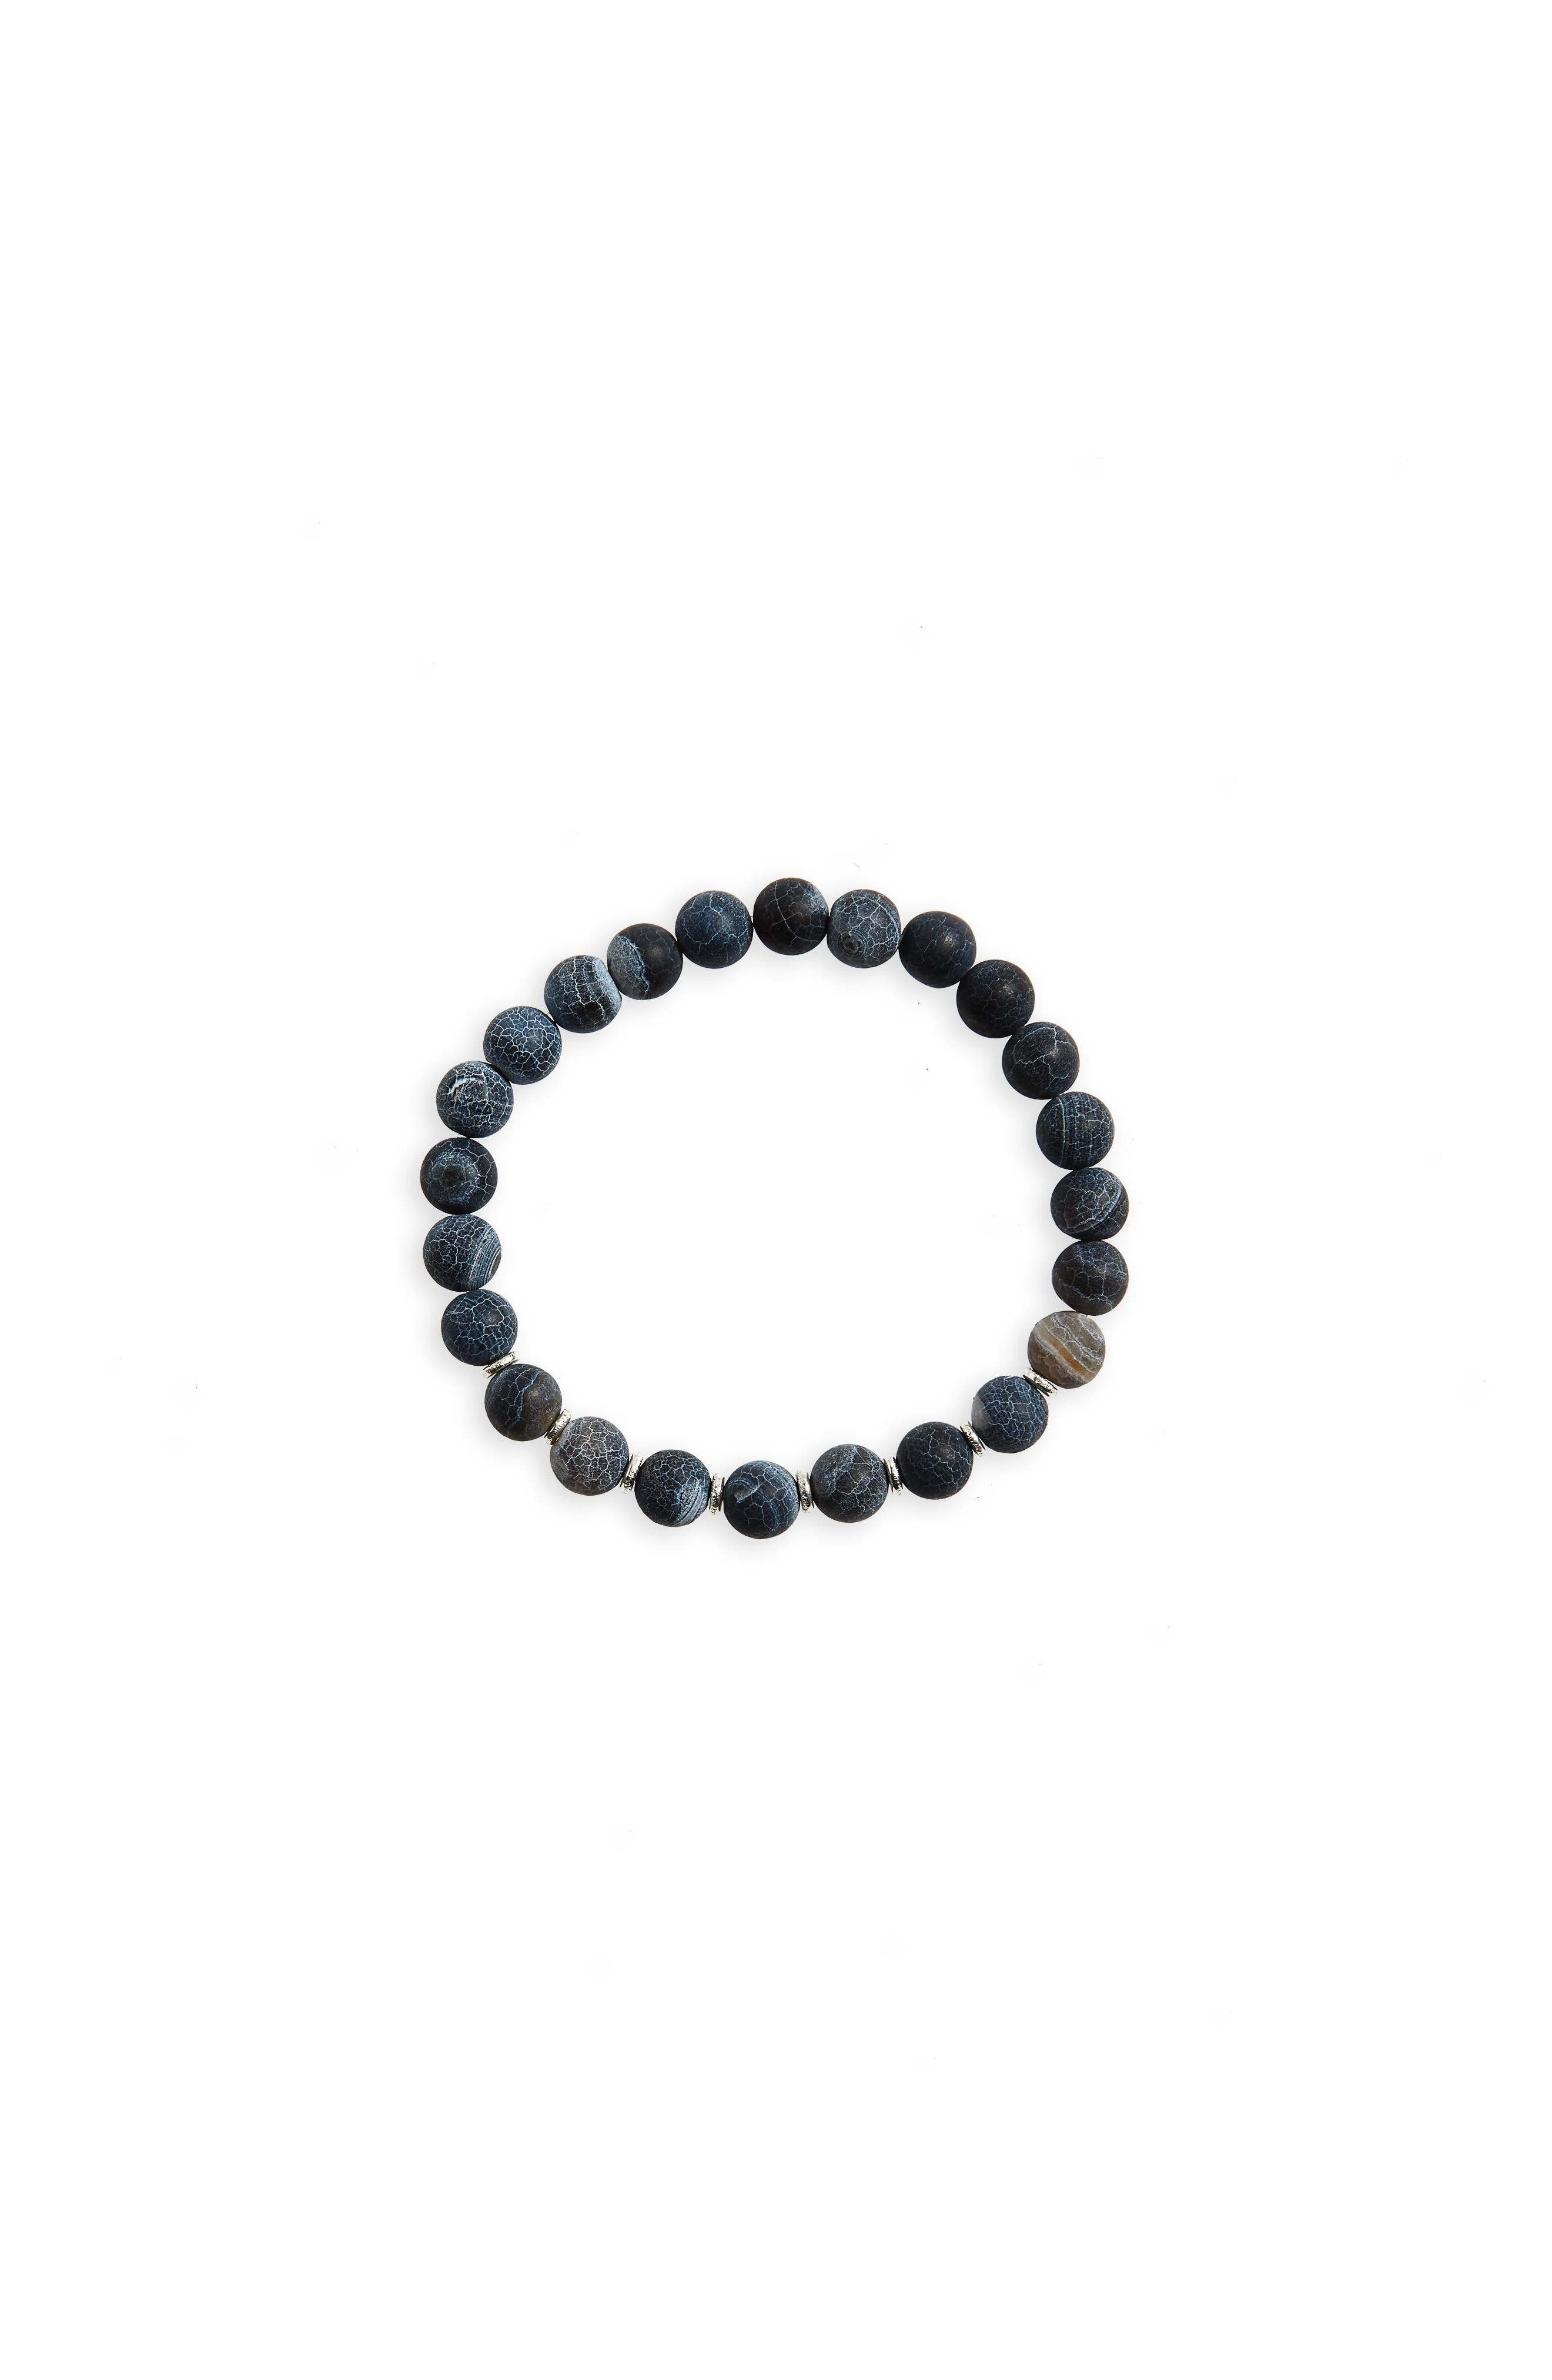 Agate Bead Bracelet,                             Main thumbnail 1, color,                             Black